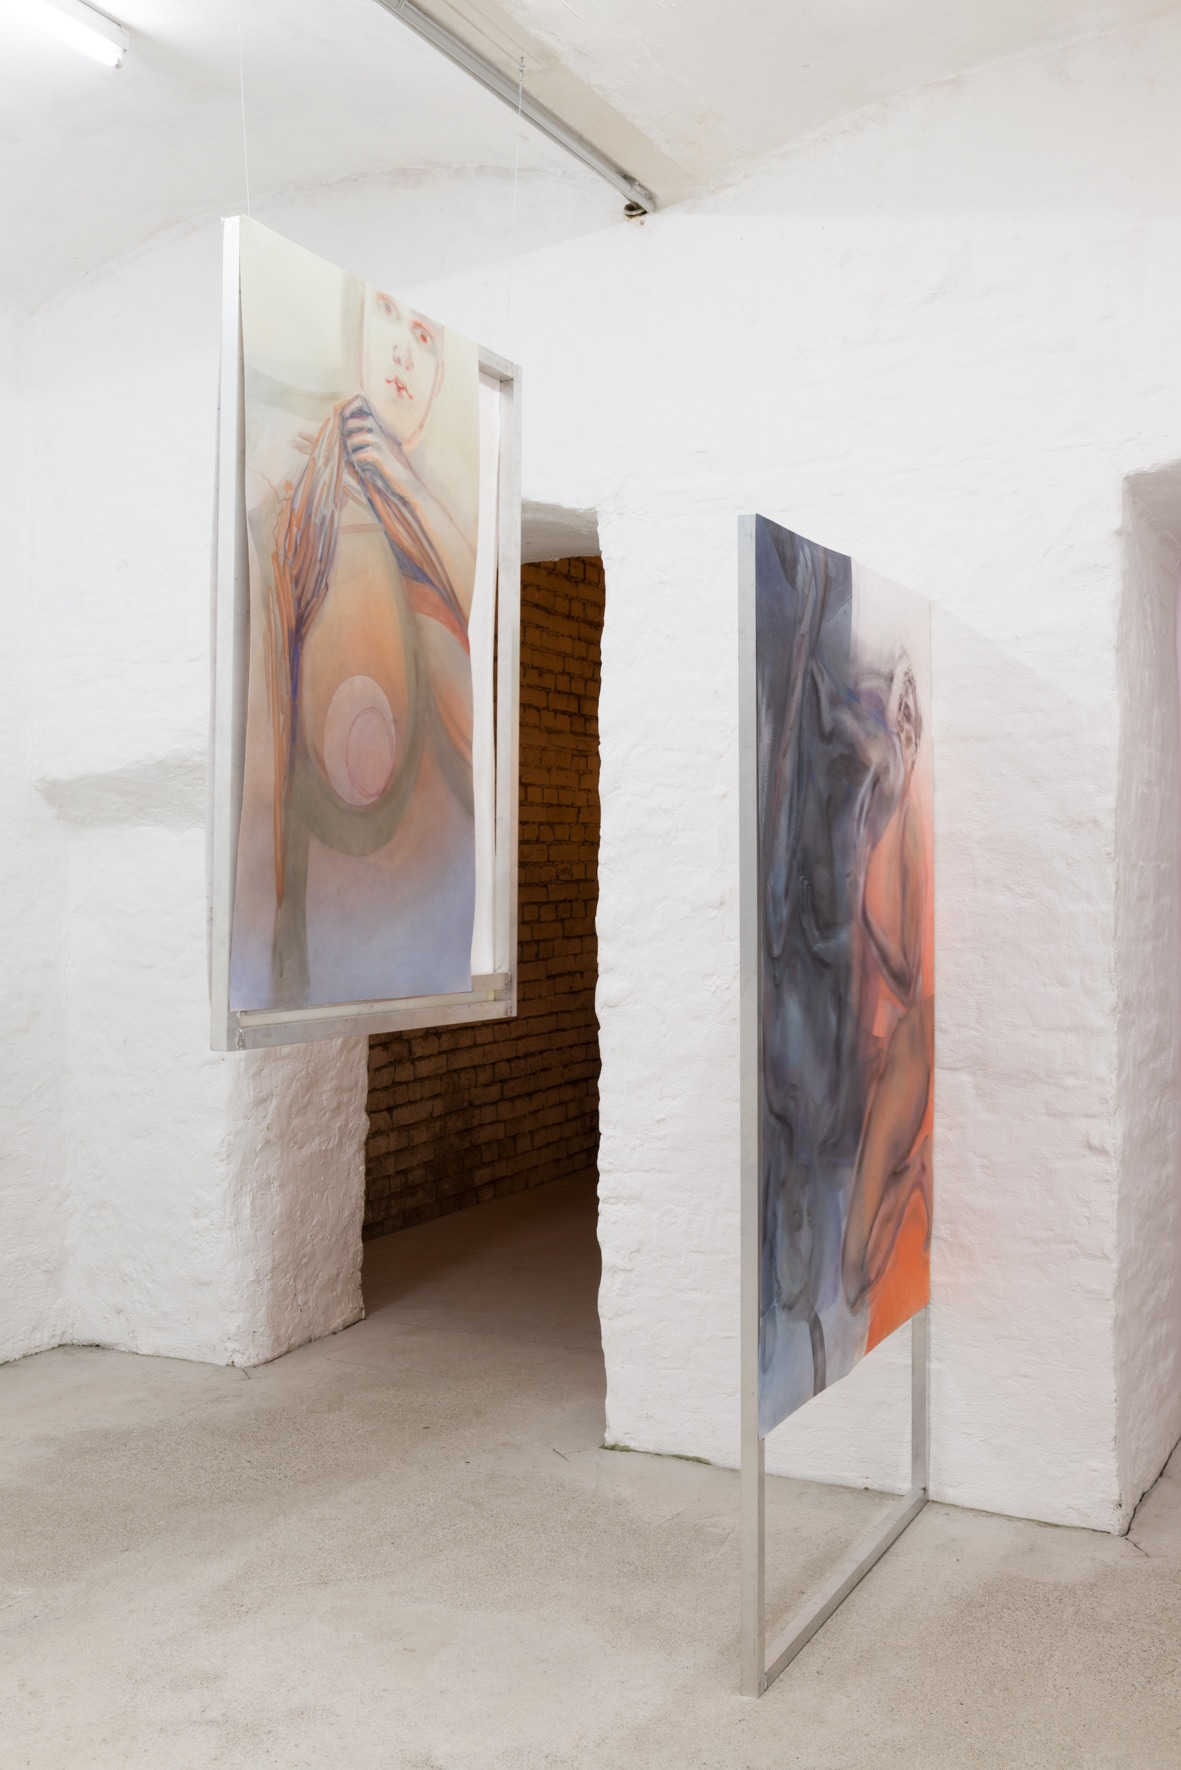 Exhibition View (Evelyn Plaschg)